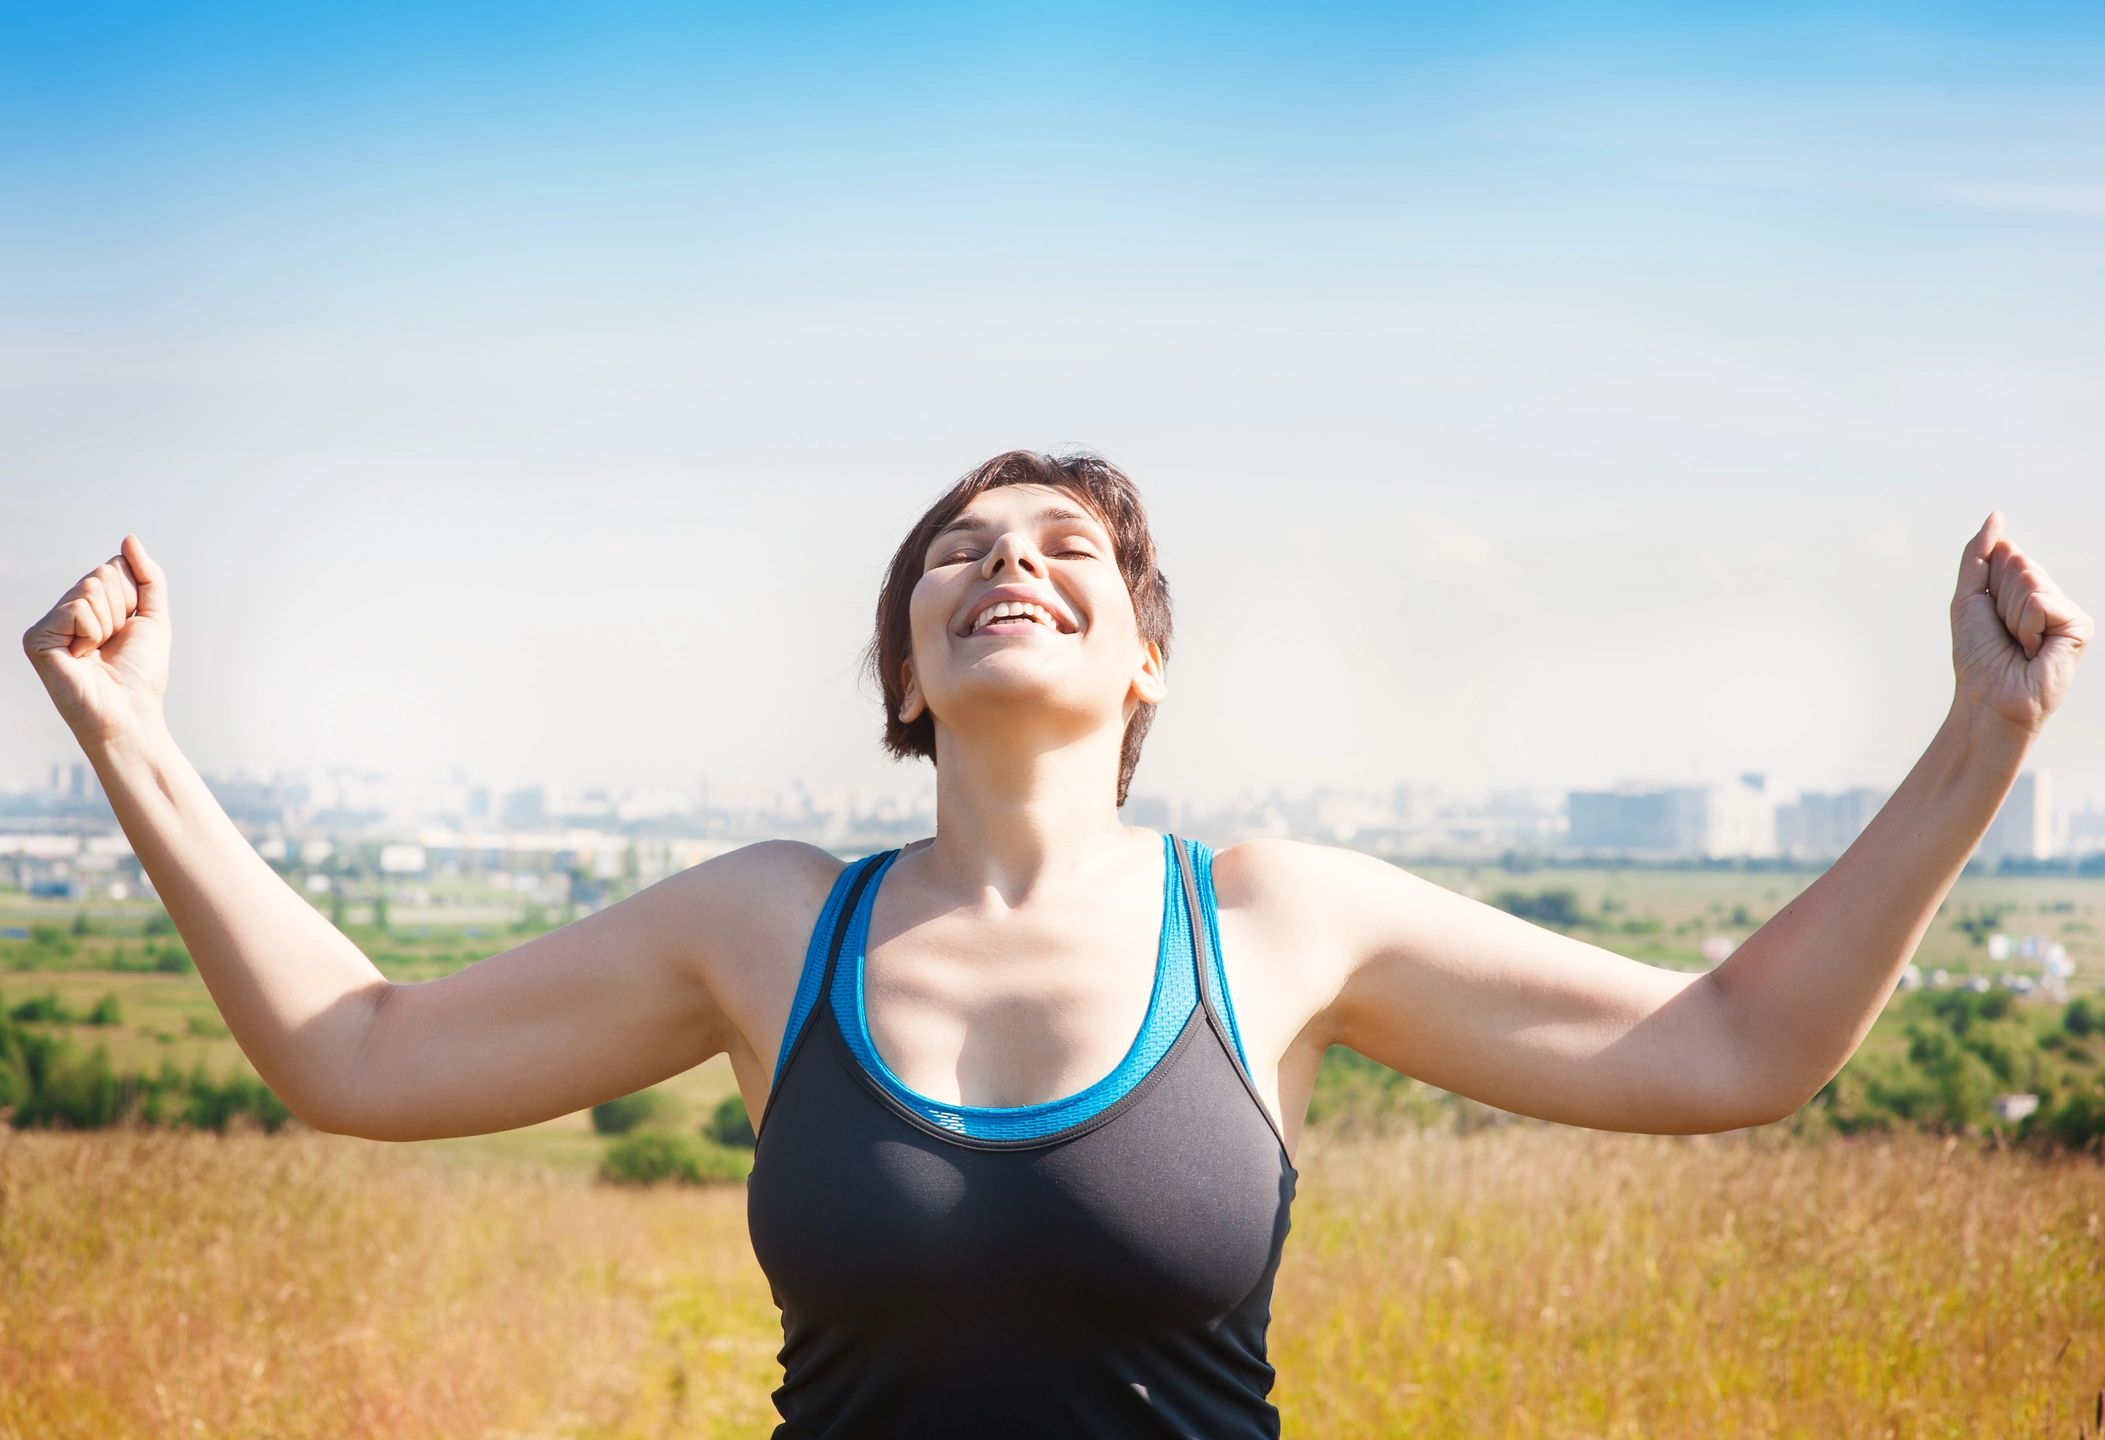 How to Free Yourself from Gaining Unwanted Weight